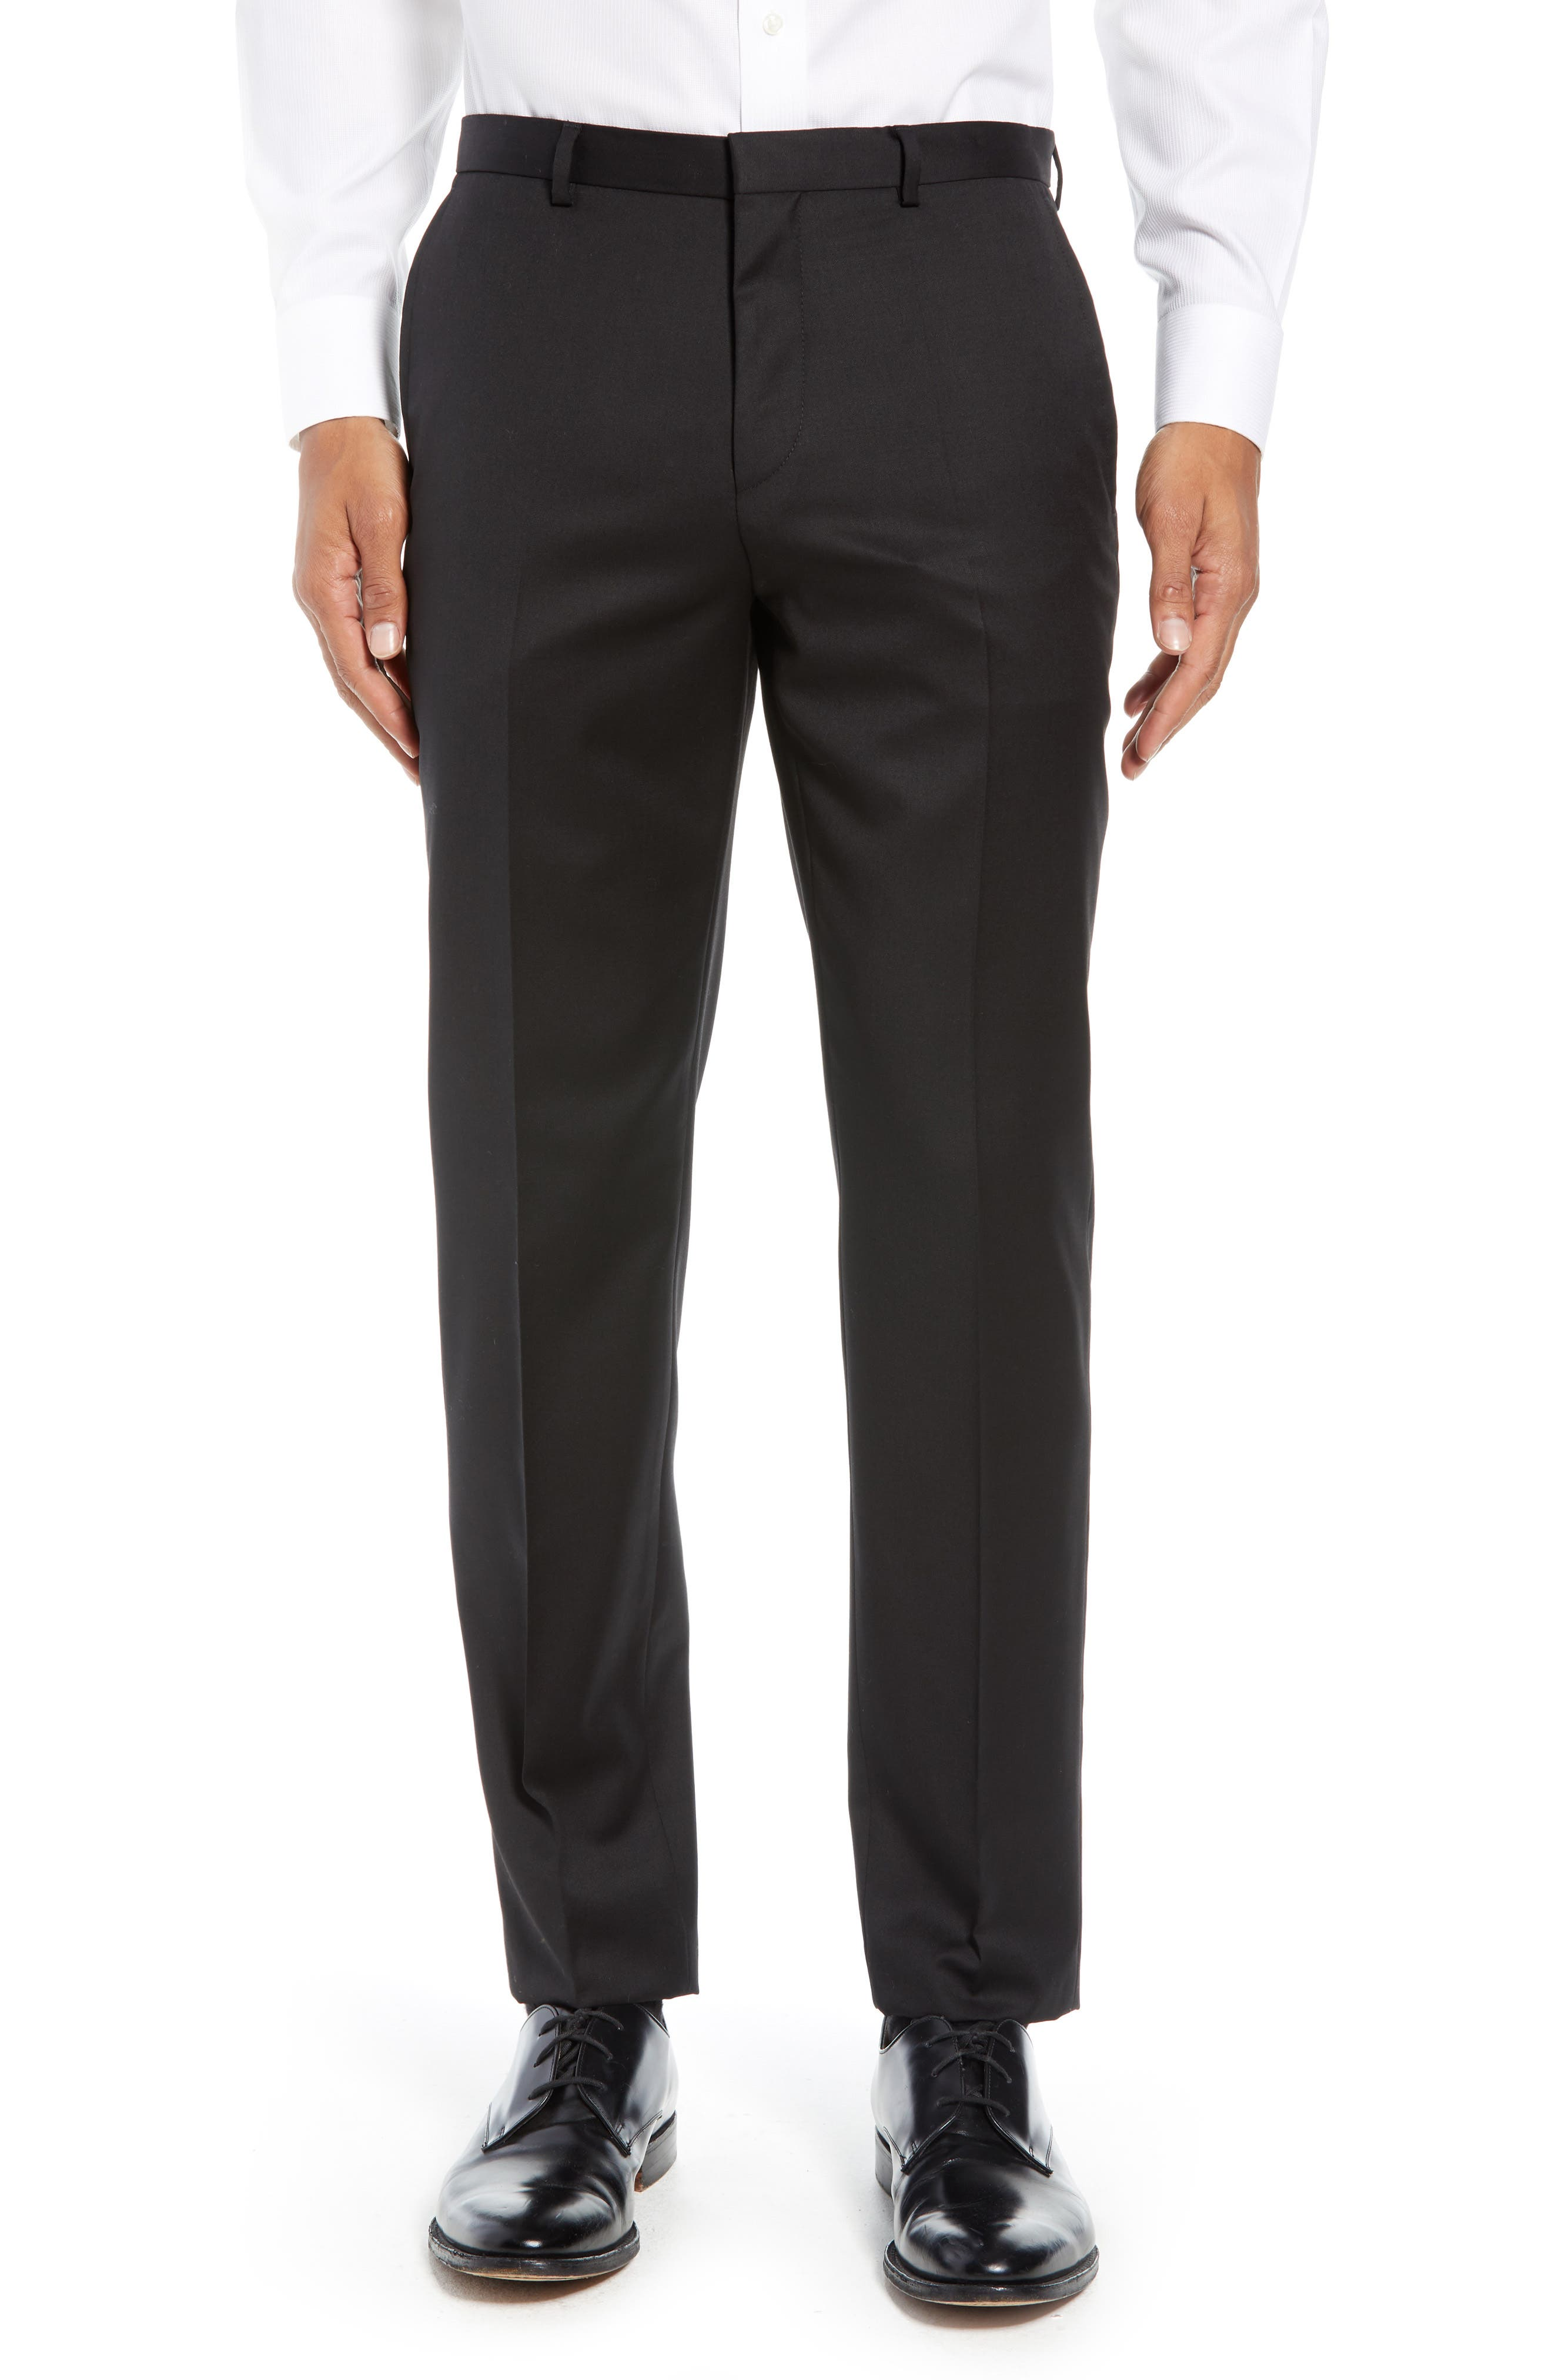 Hartley Extra Slim Trousers,                             Main thumbnail 1, color,                             001